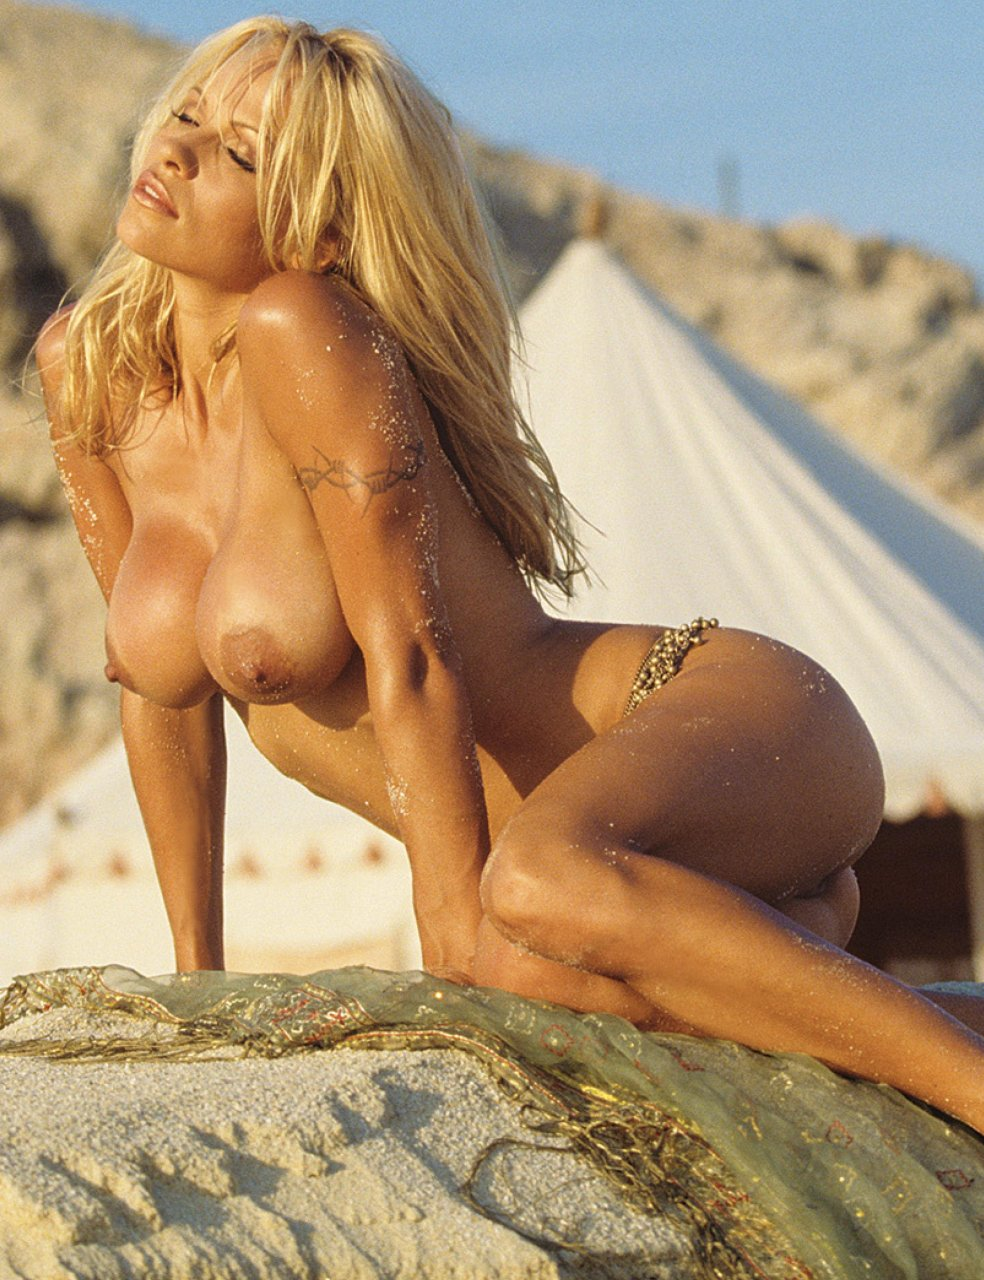 Remarkable, pictures of pamala anderson naked consider